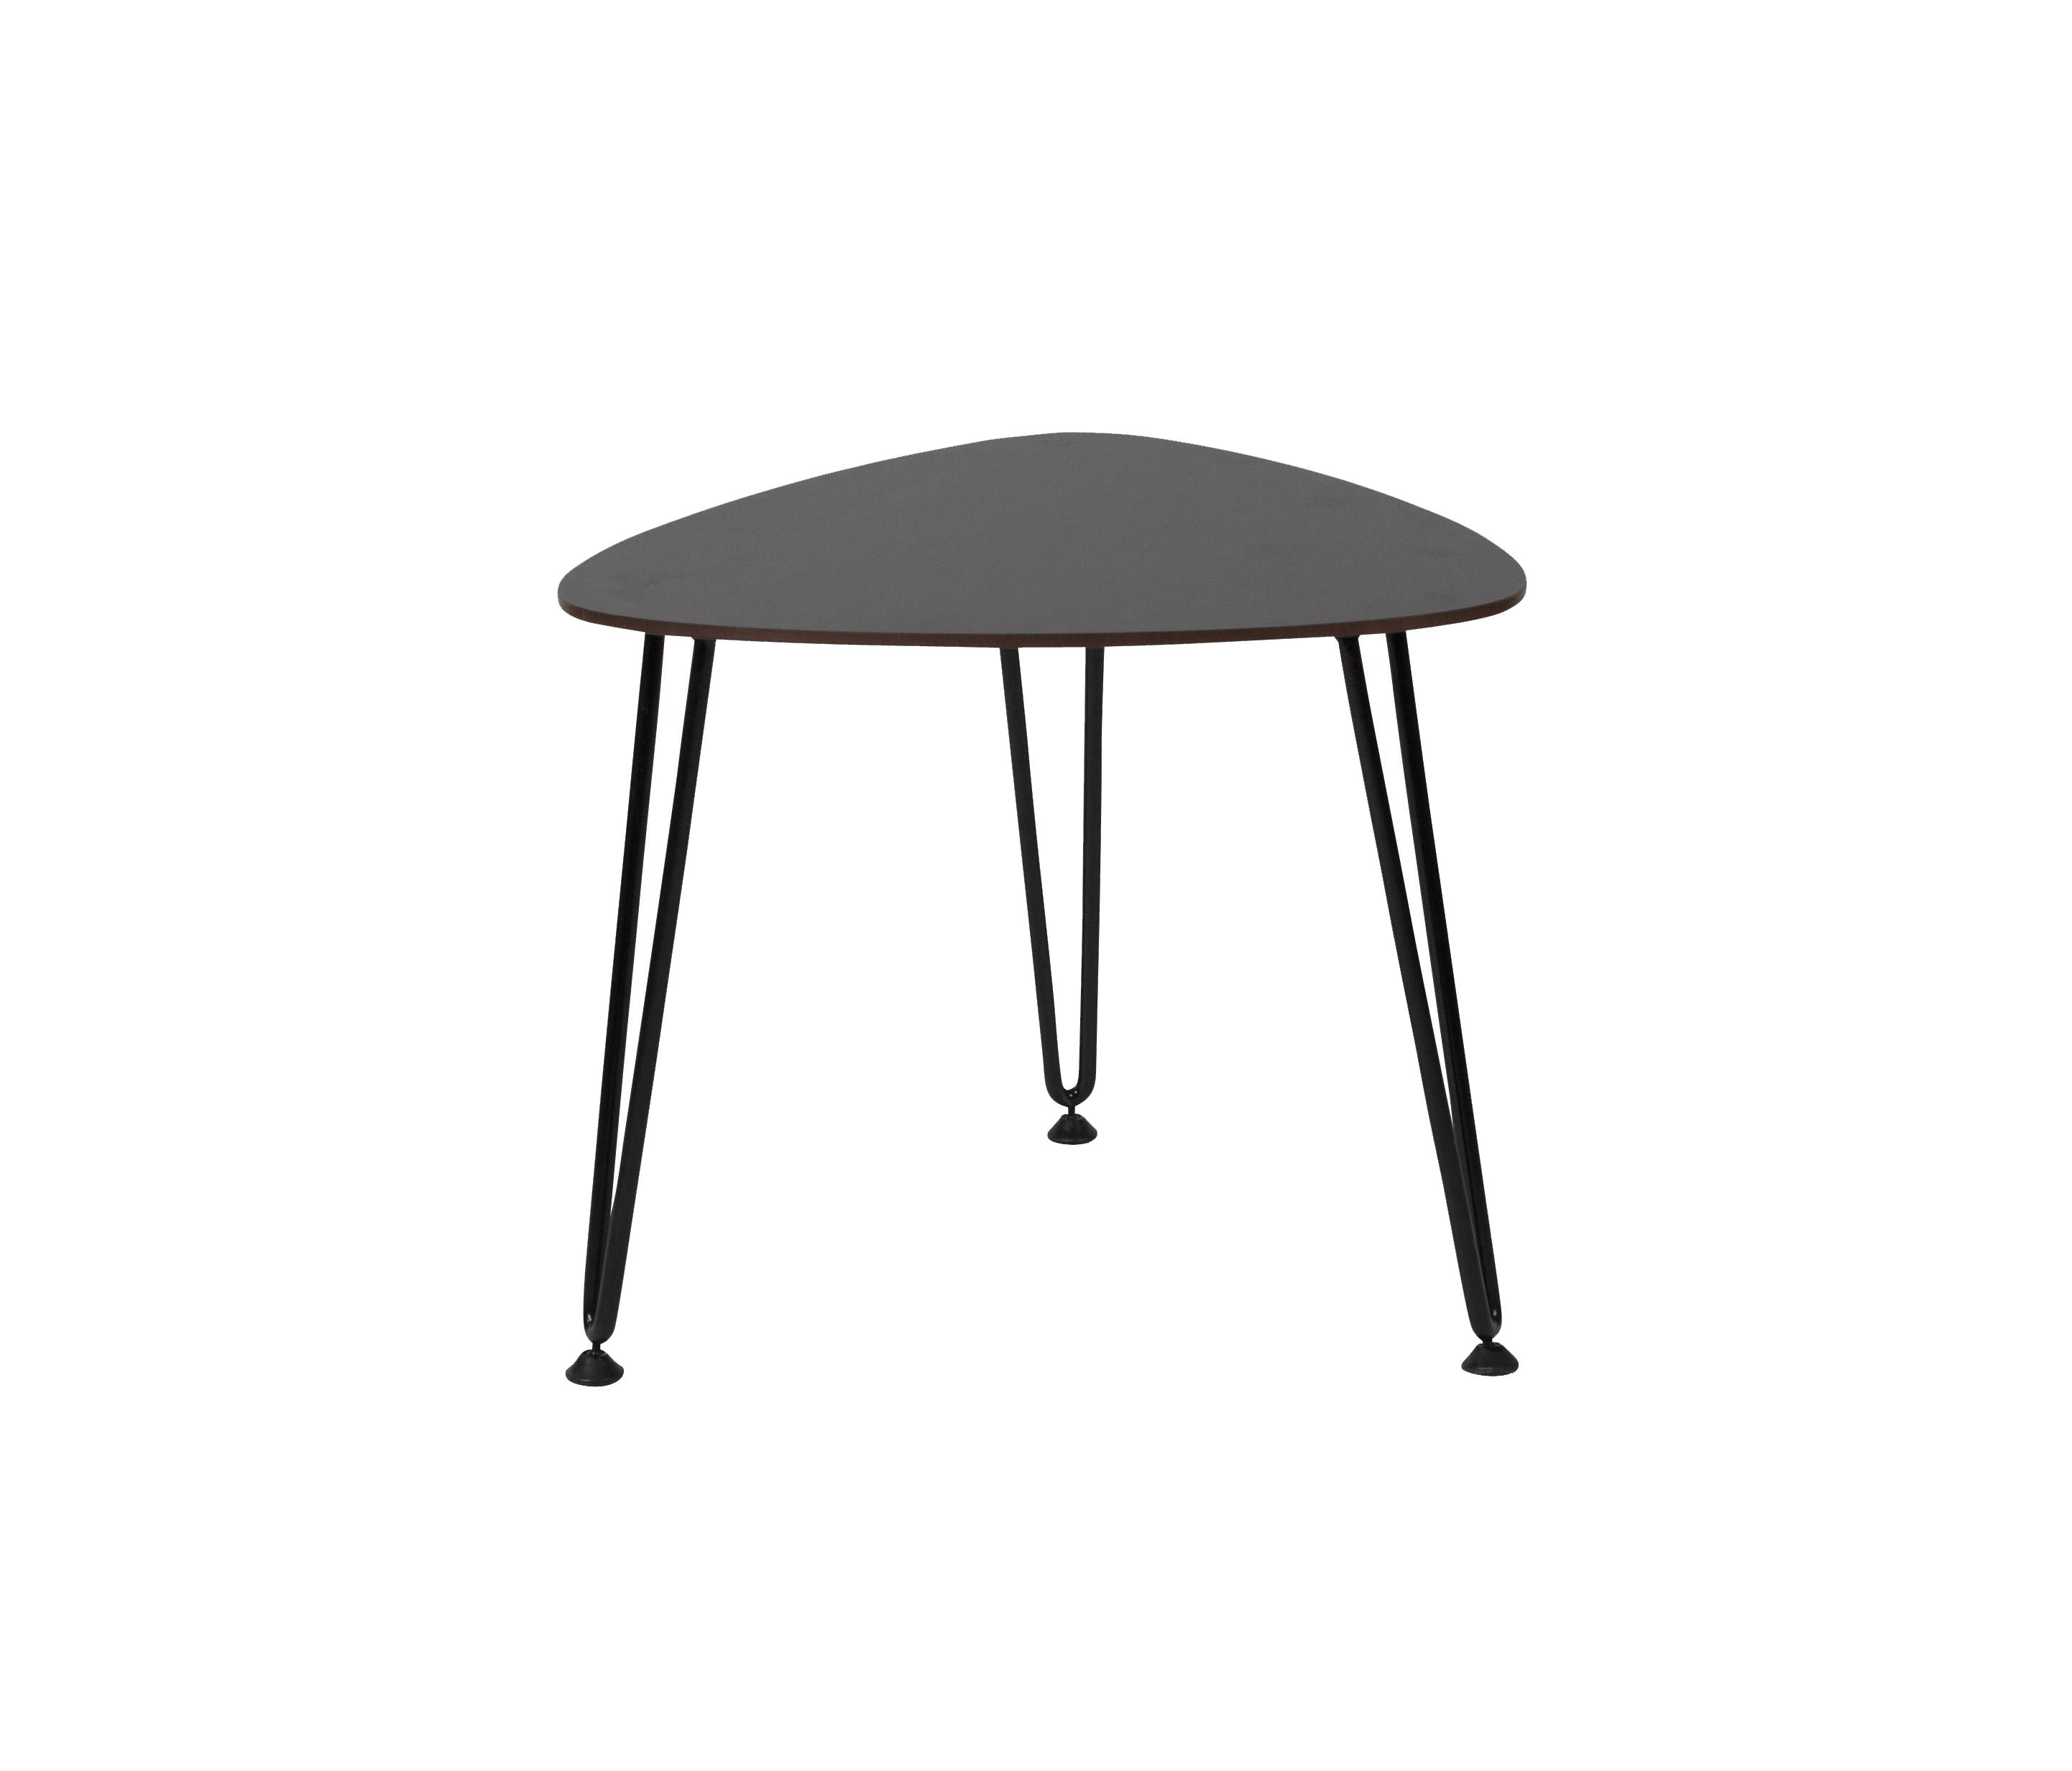 ROXY - ROZY TABLE S - Side tables from Vincent Sheppard   Architonic